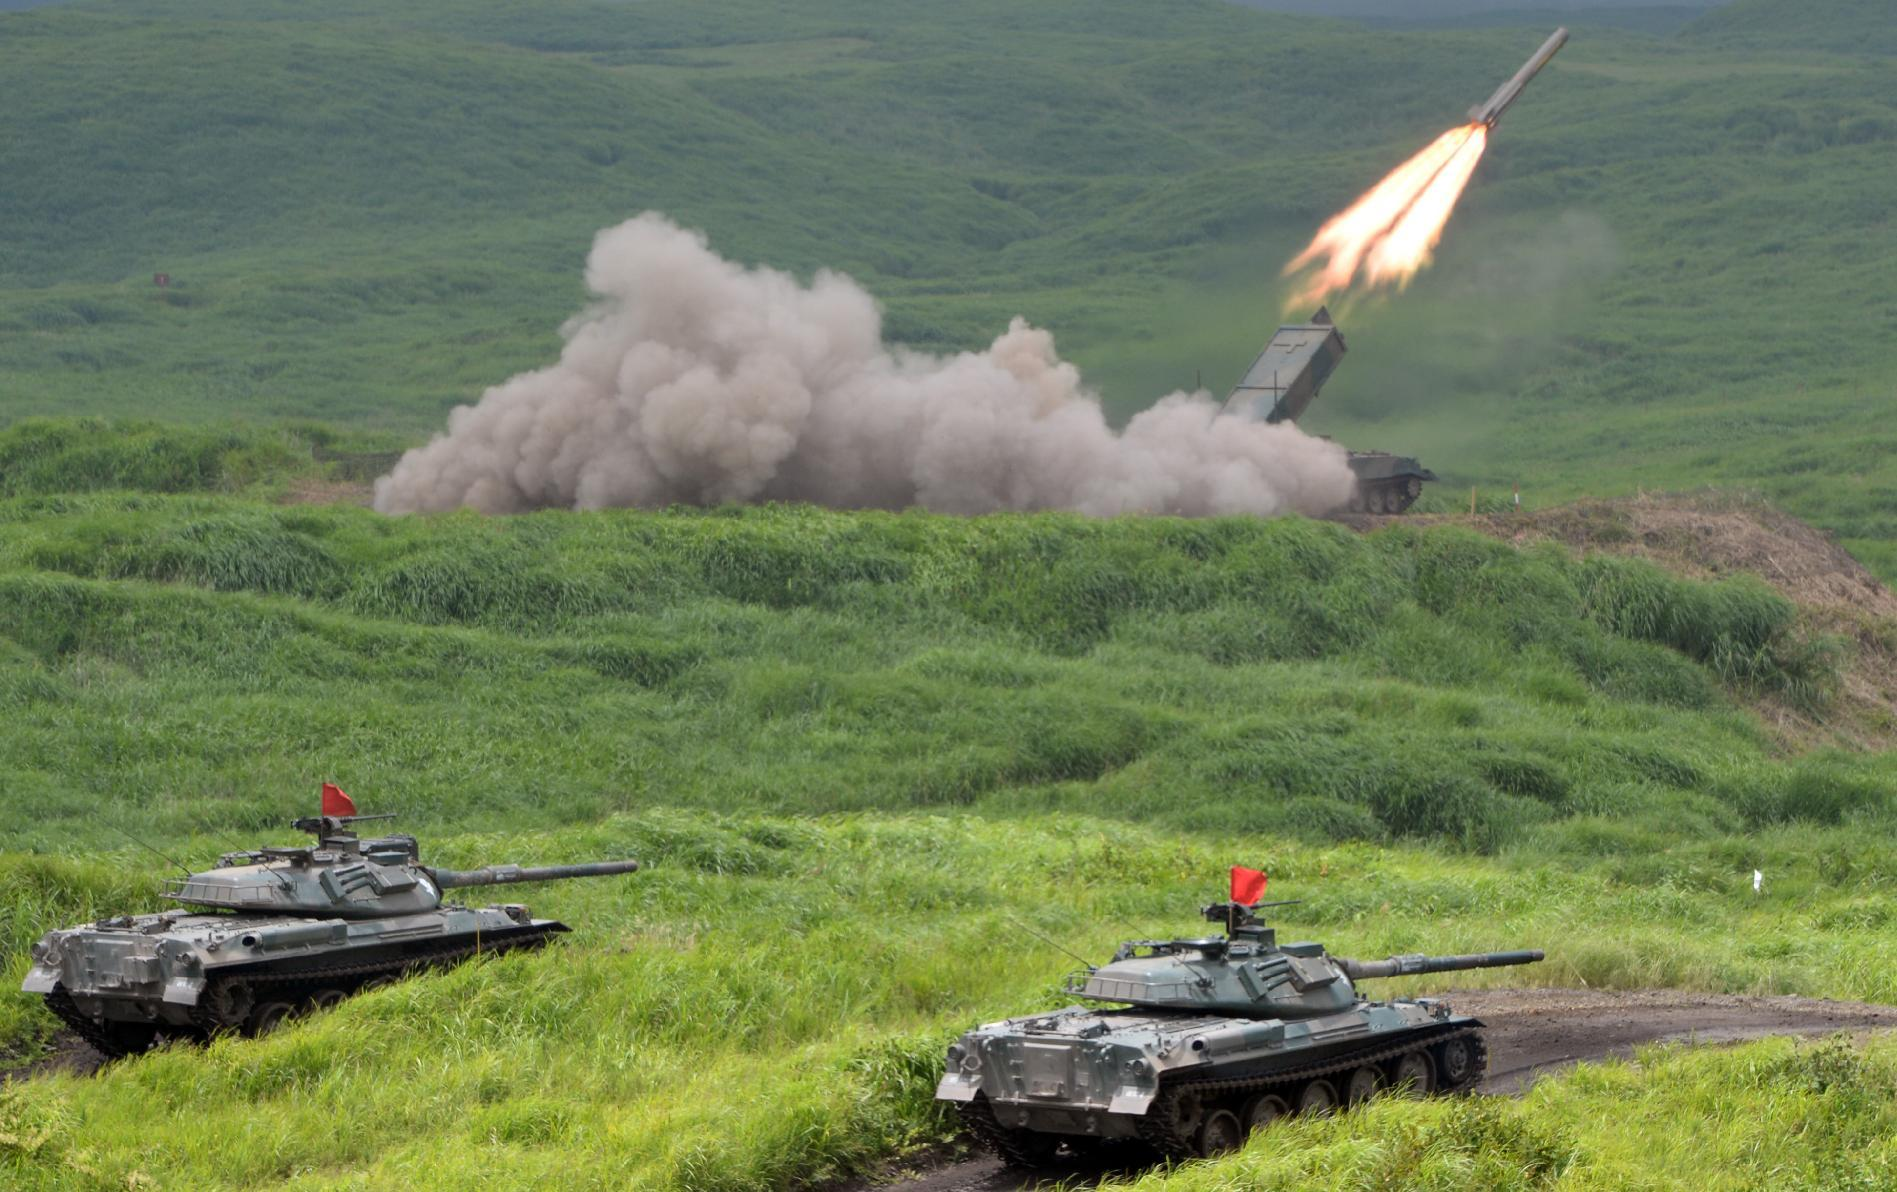 Japan Ground Self Defense Forces' type 92 anti-landmine missile is fired while tanks stand by during an exercise at its Higashi-Fuji training ground in Gotemba, some 100 km west of Tokyo, on August 19, 2014 (AFP Photo/Toshifumi Kitamura)